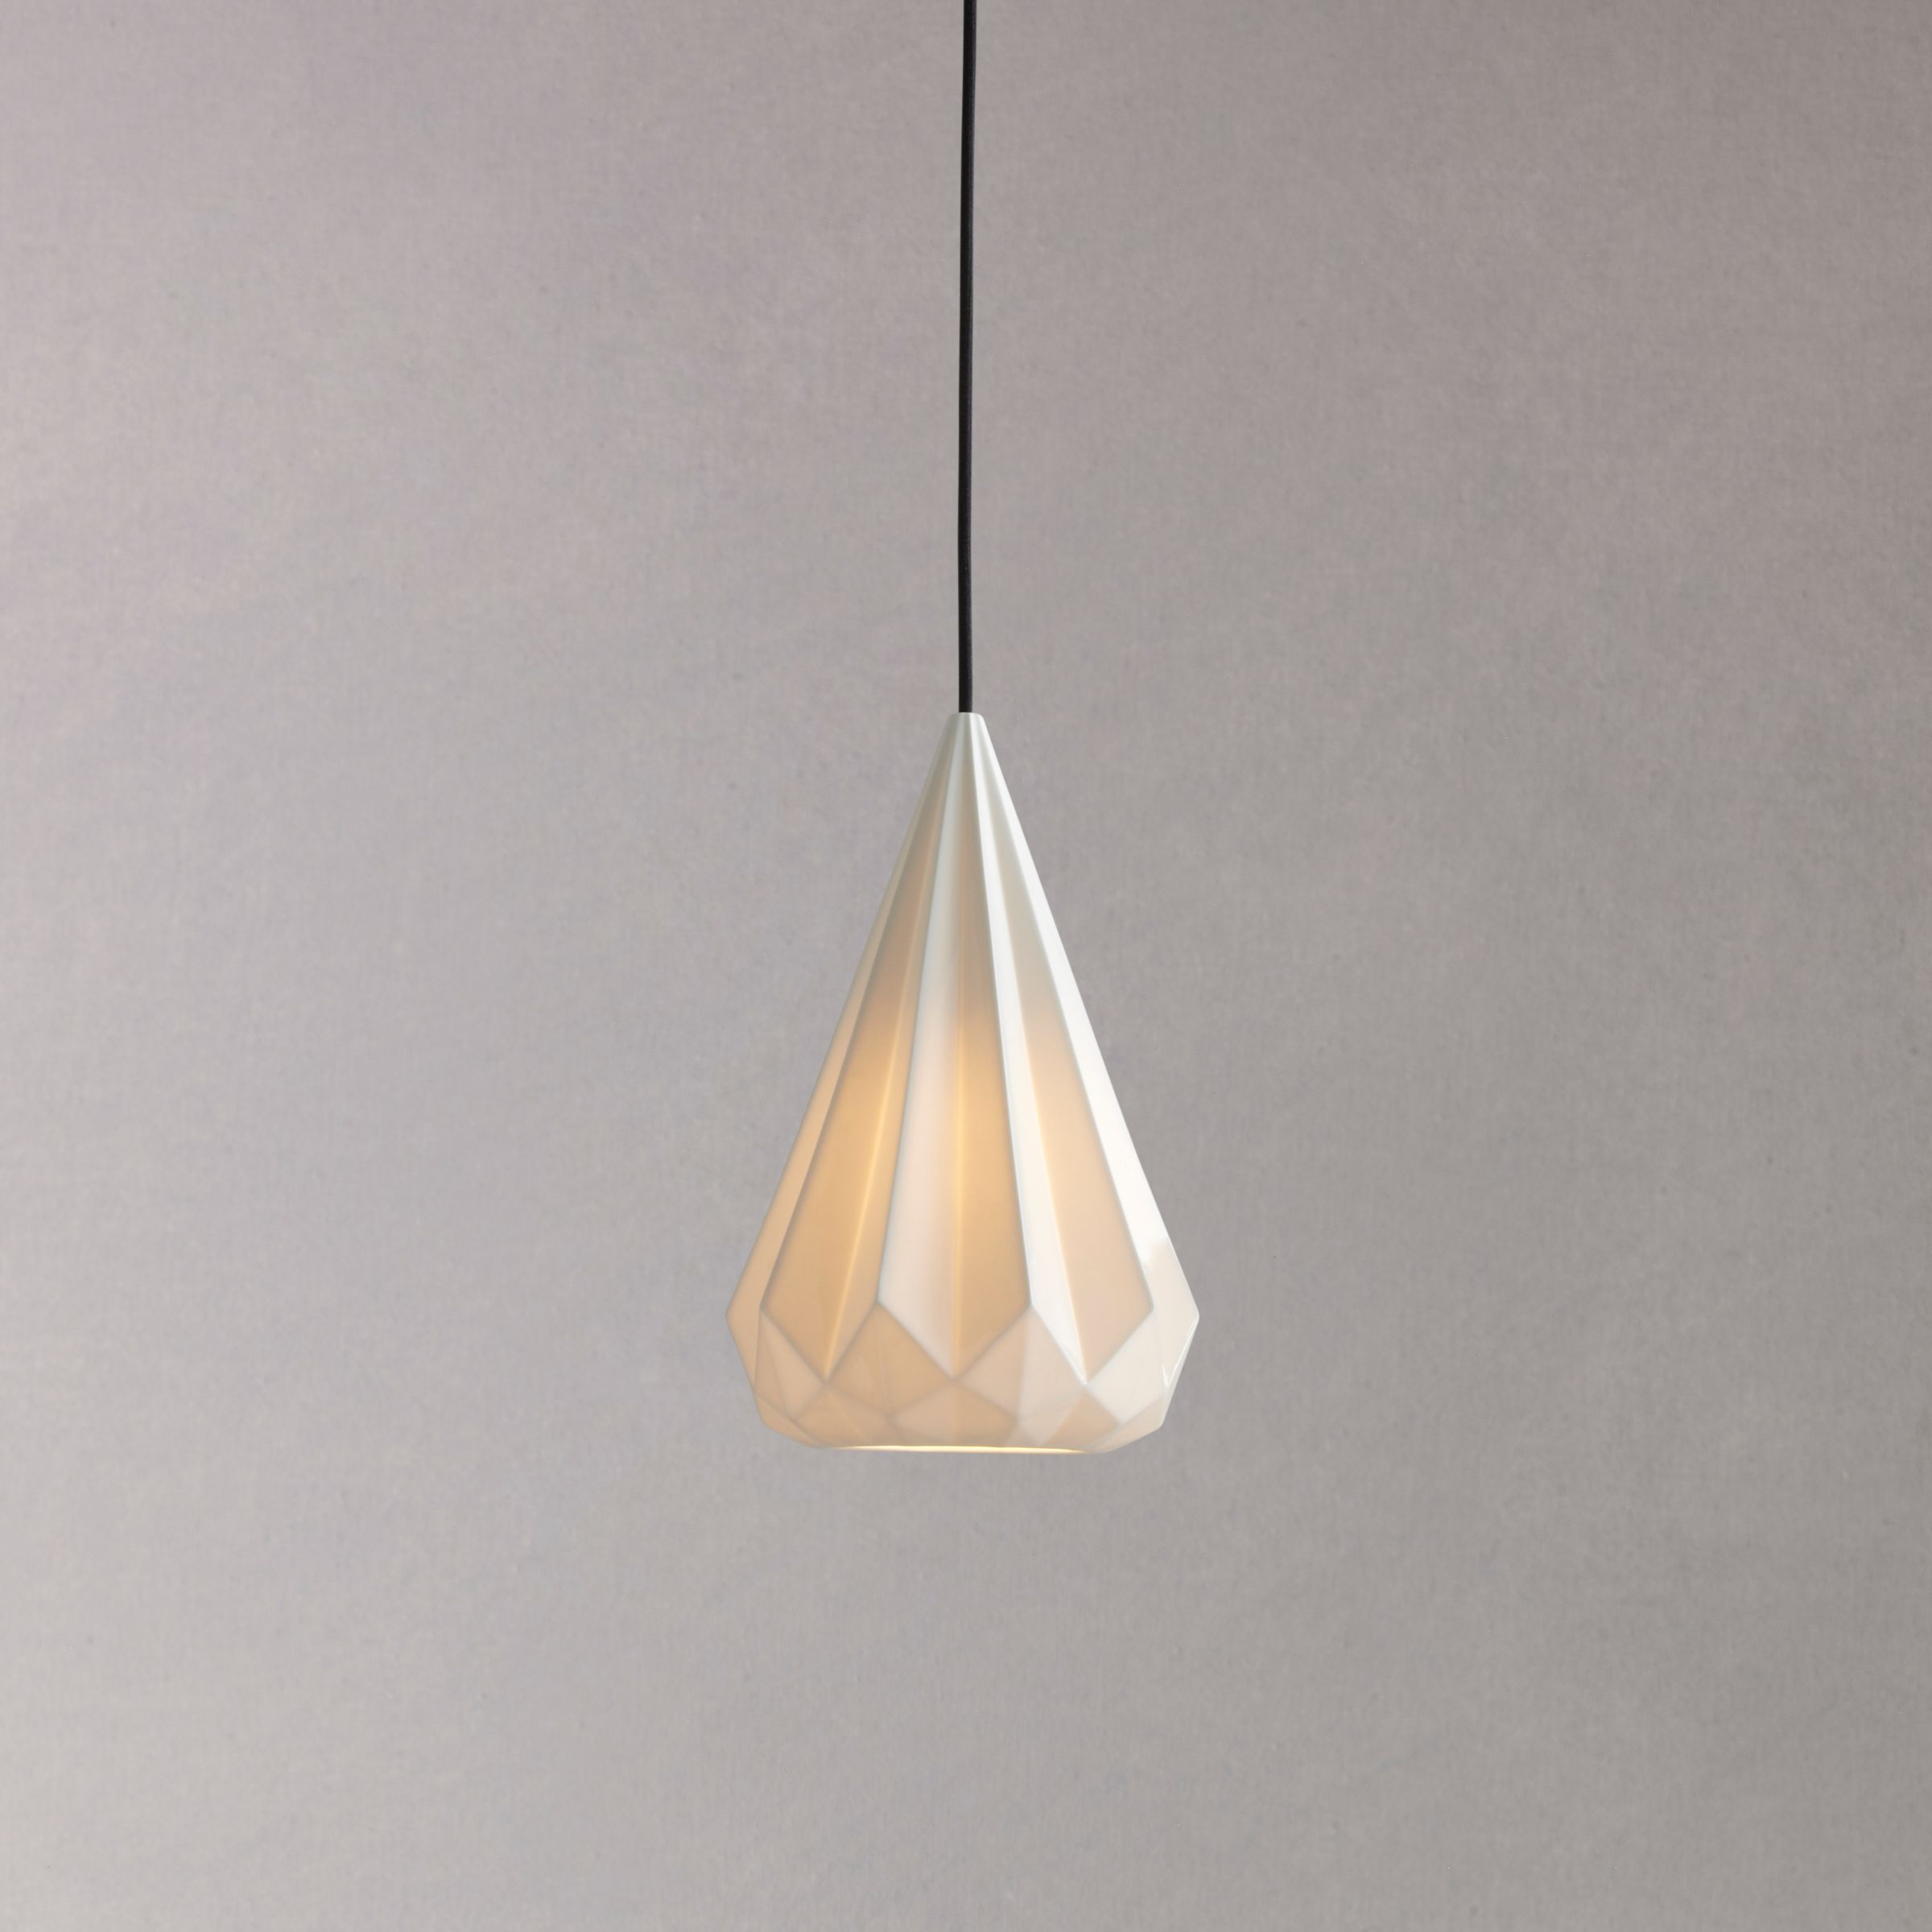 Original BTC Original BTC Hatton 3 Tall Pendant Light, 21cm